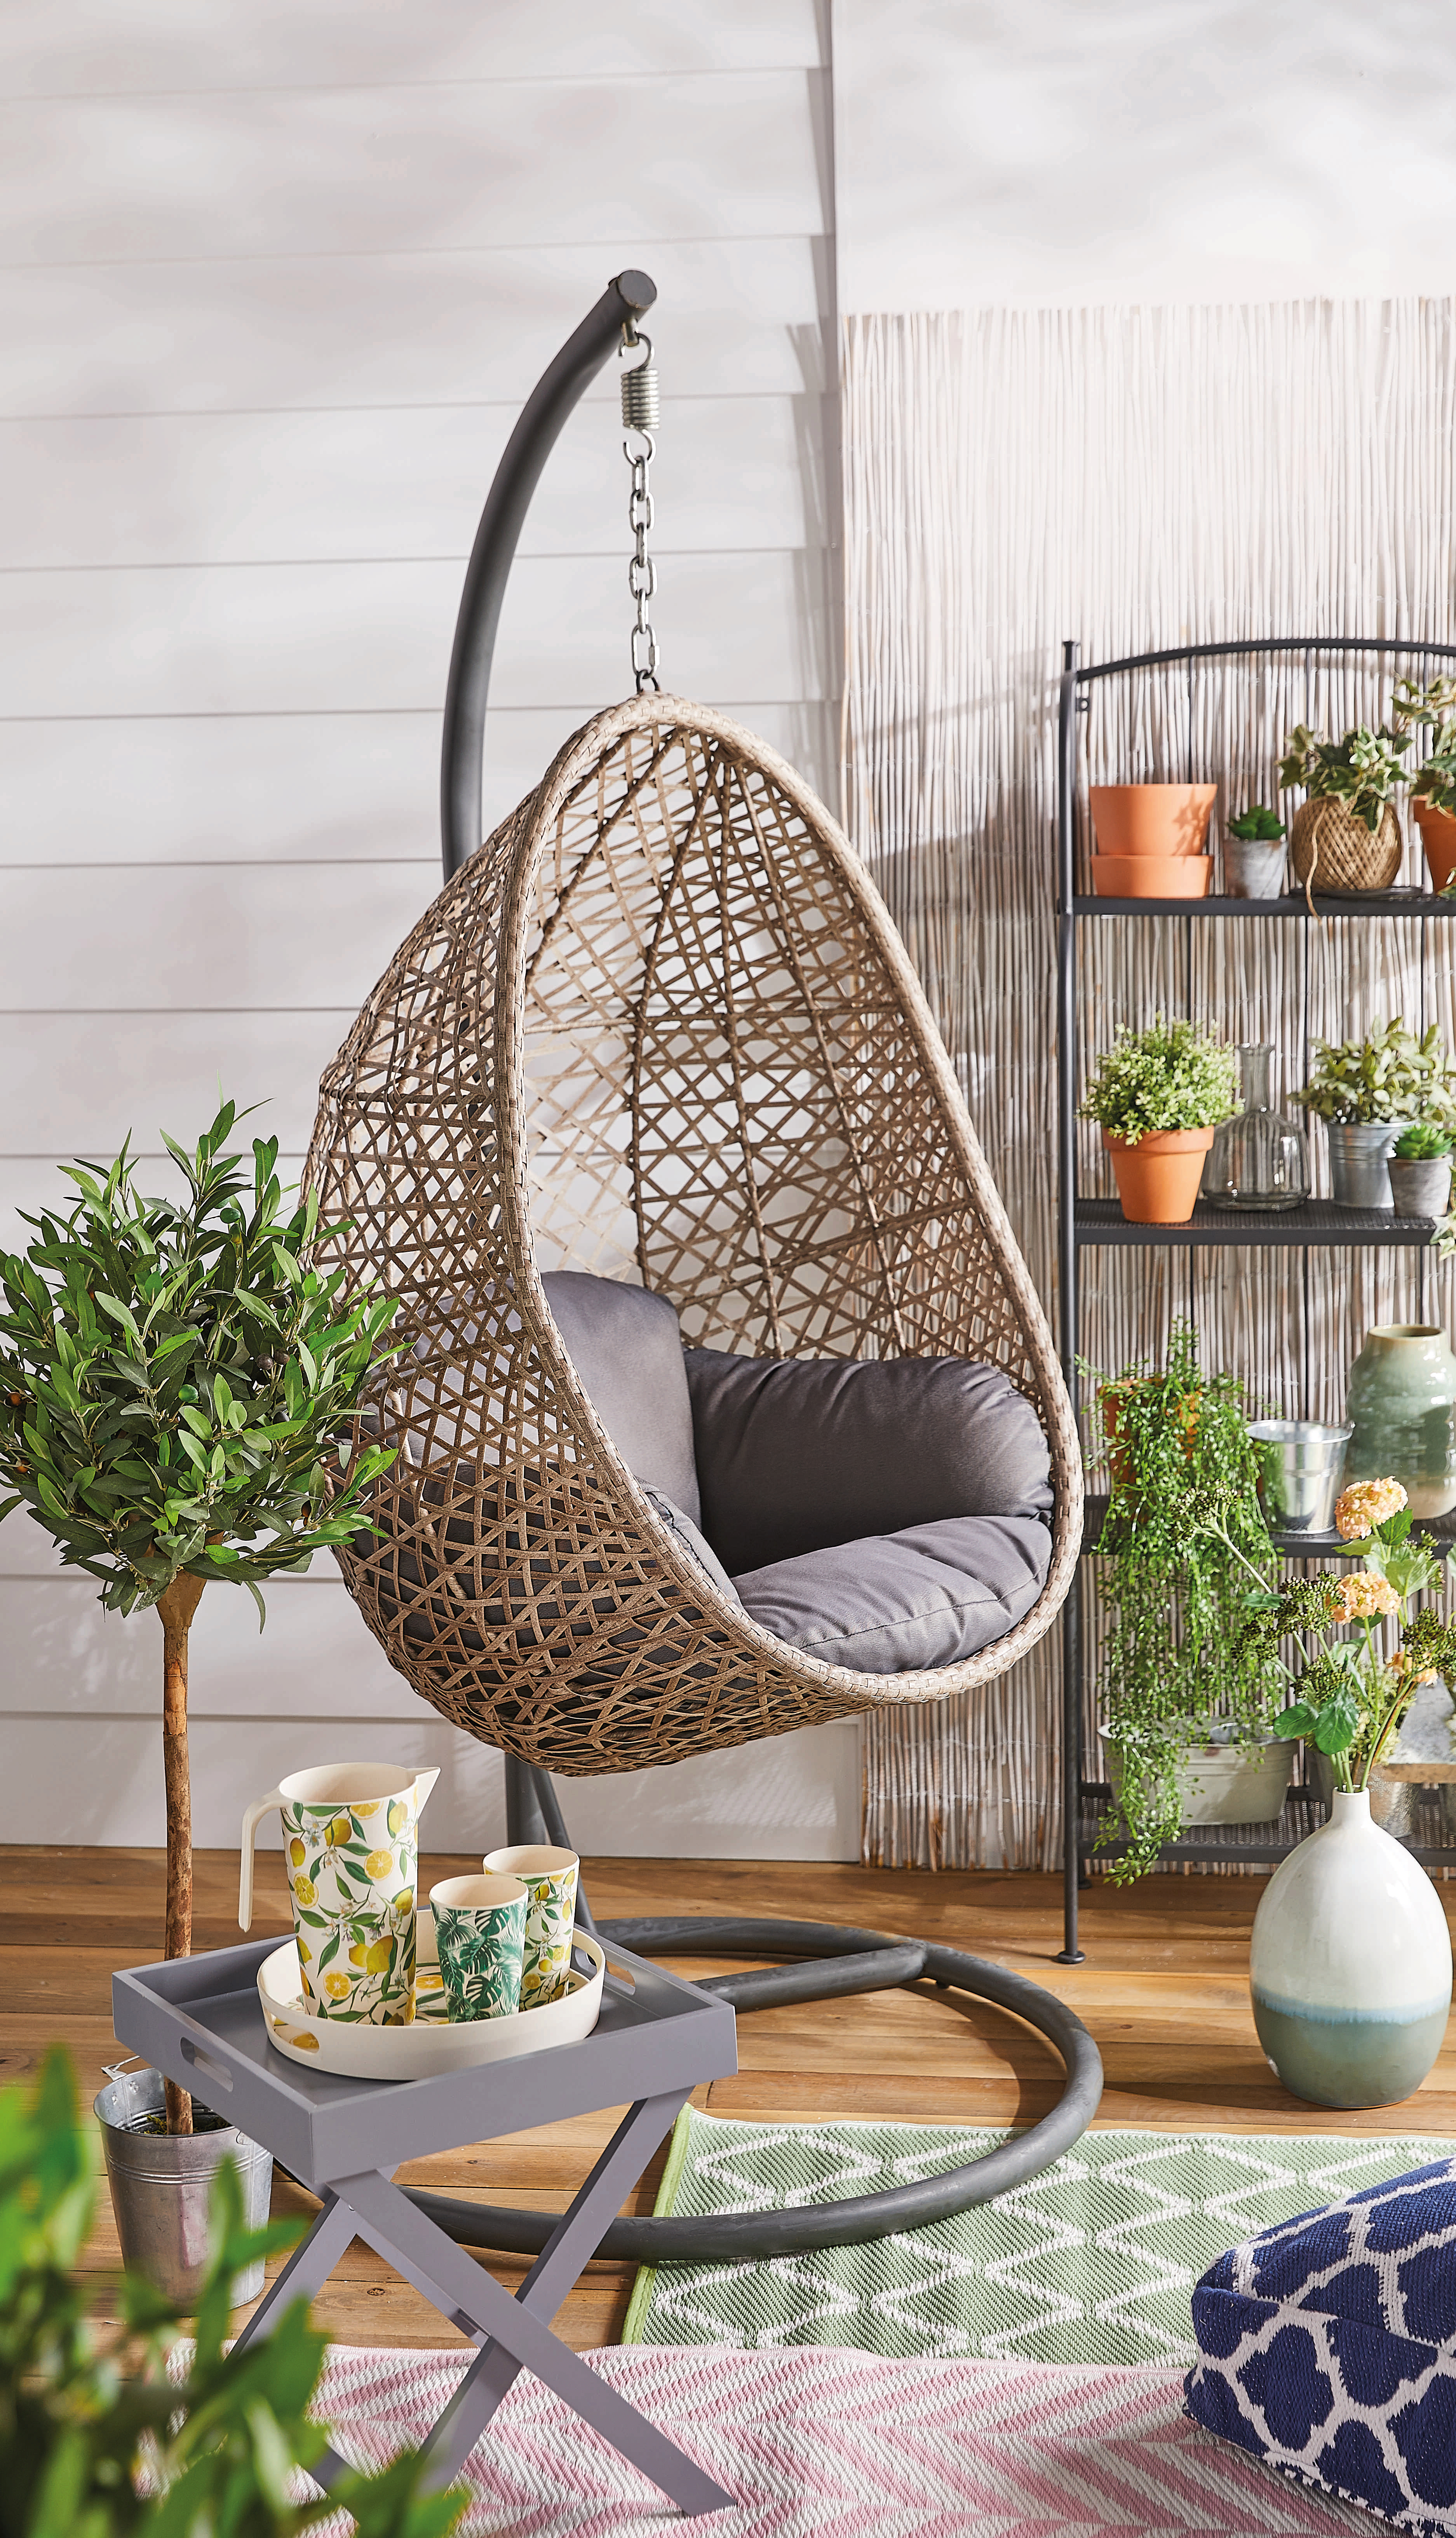 Pre-order this hanging egg chair from Aldi on Monday for £149.99